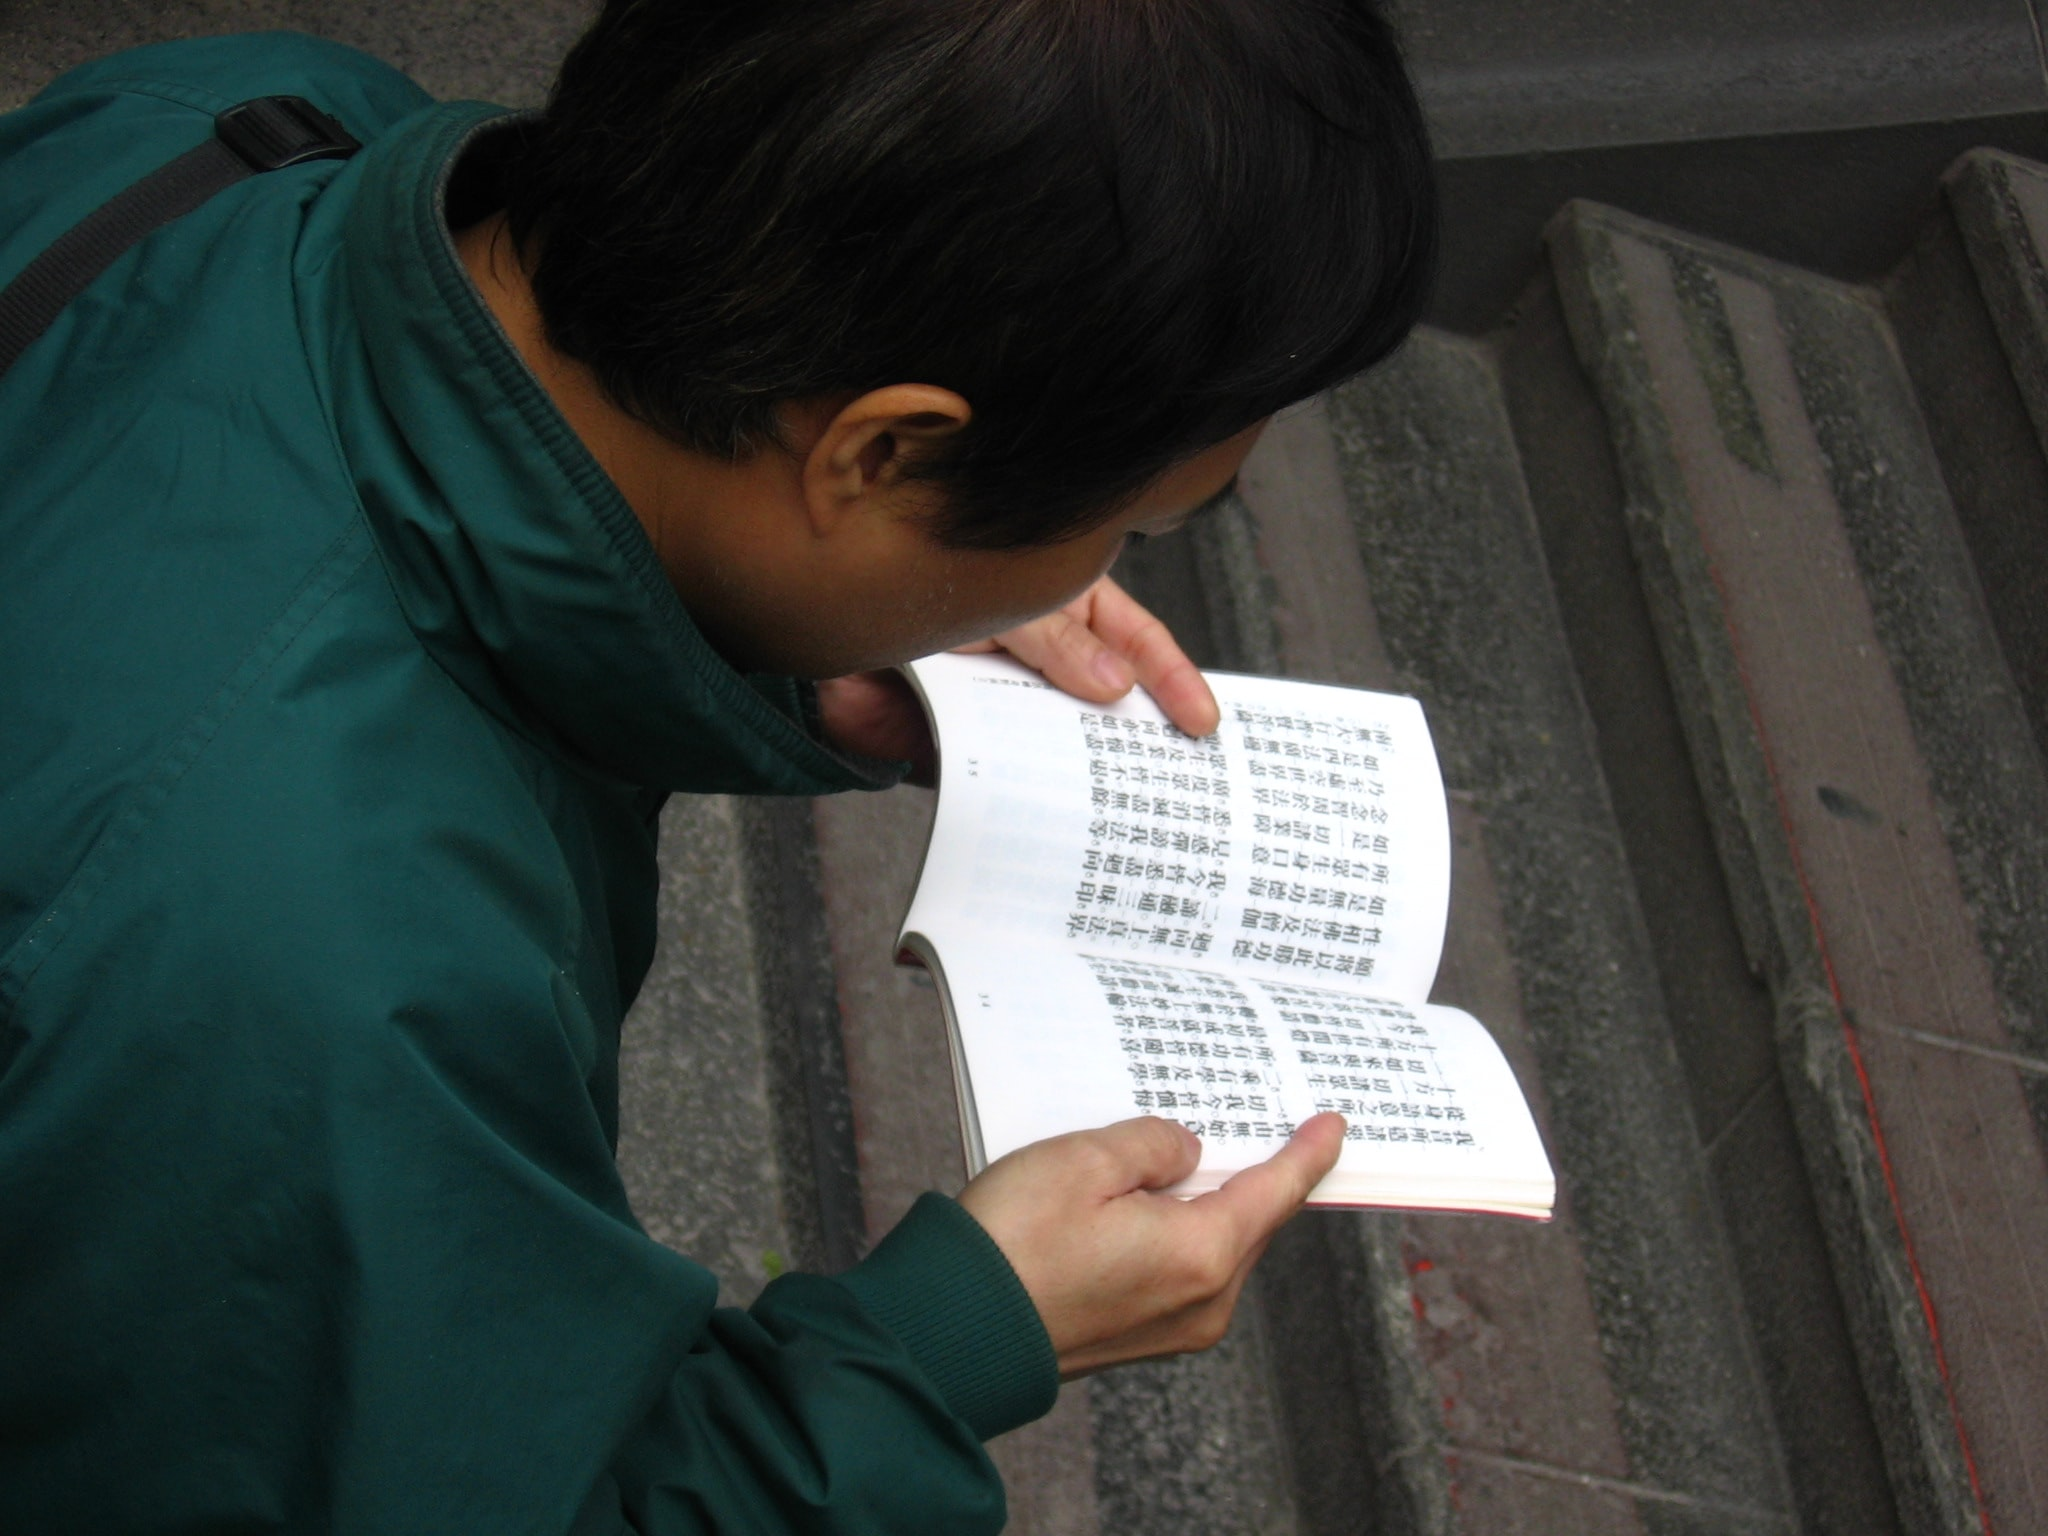 person holding white educational book